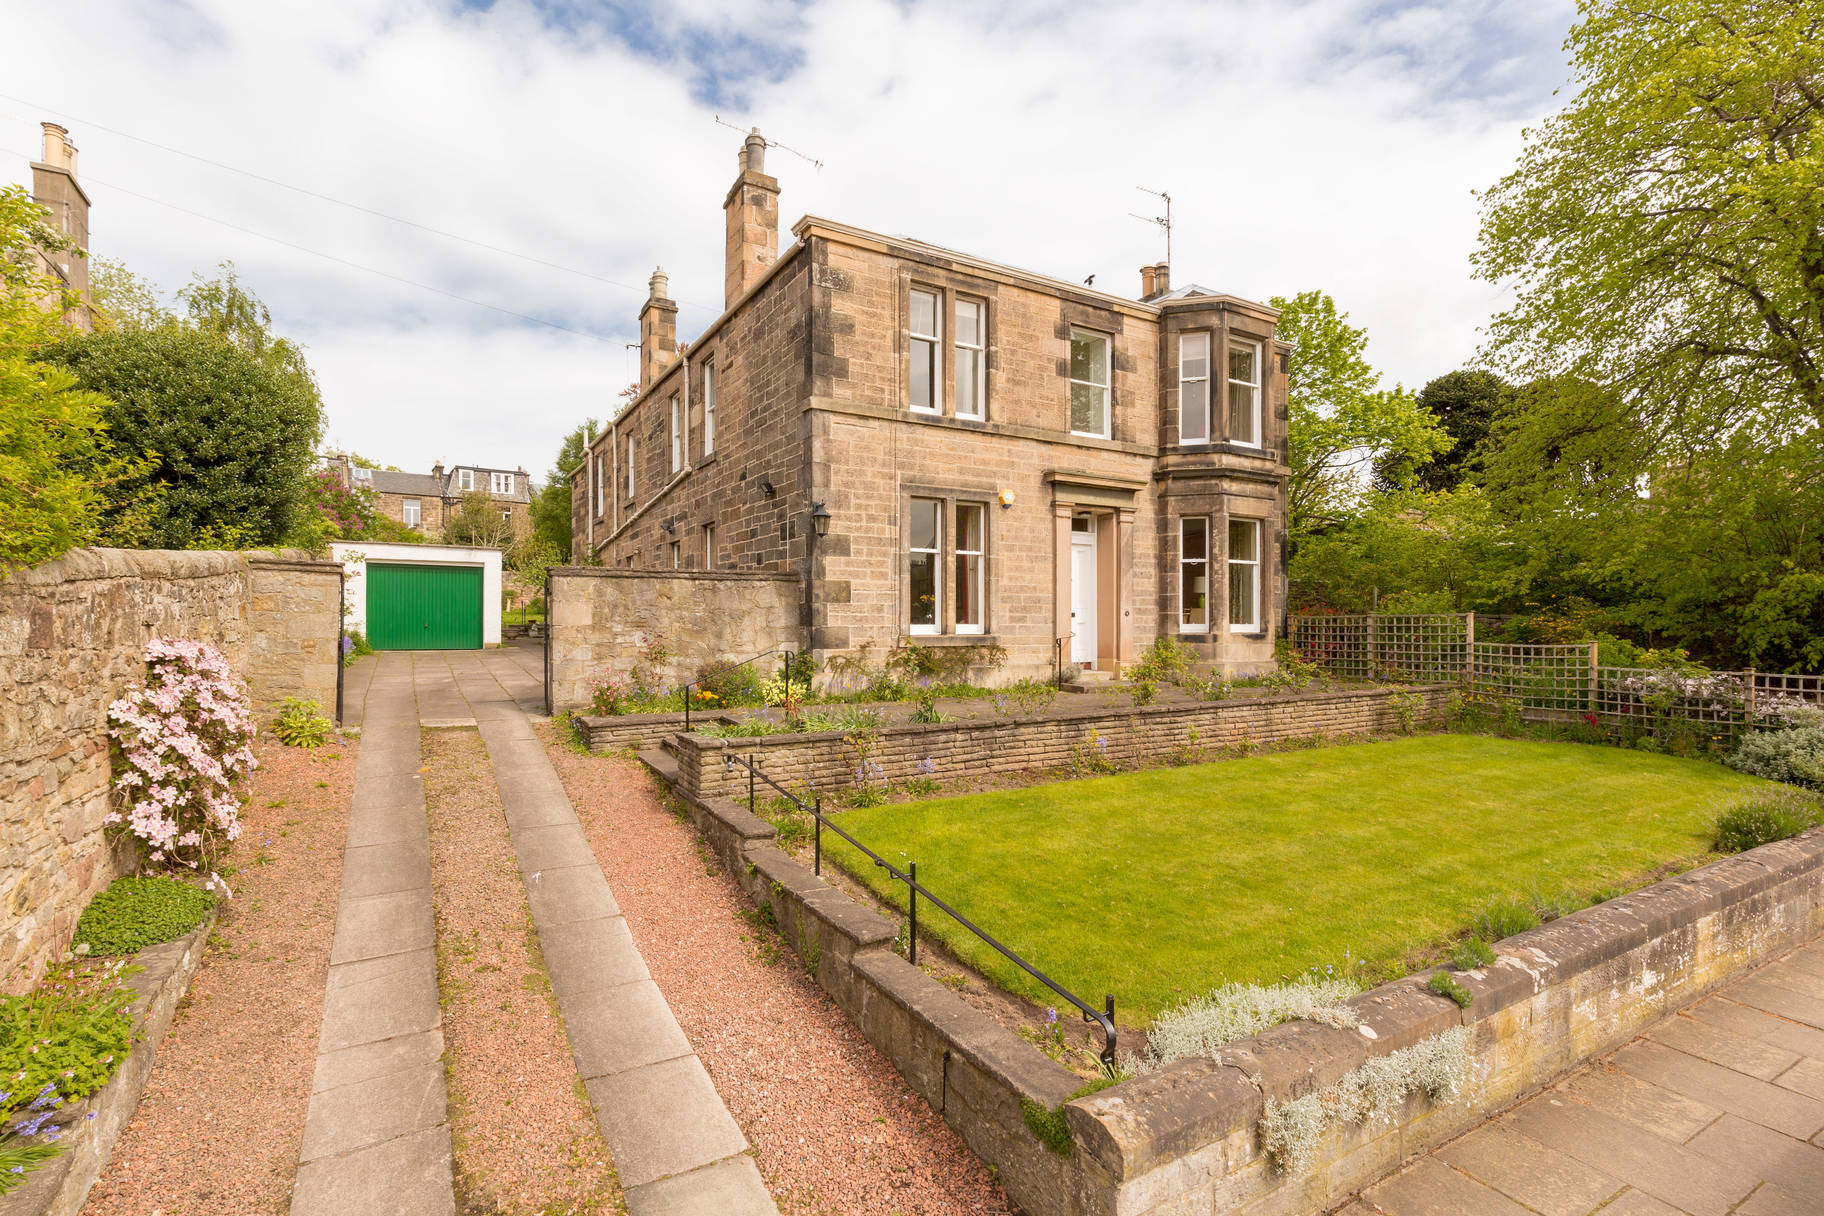 7A Morningside Place, Edinburgh, EH10 5ES